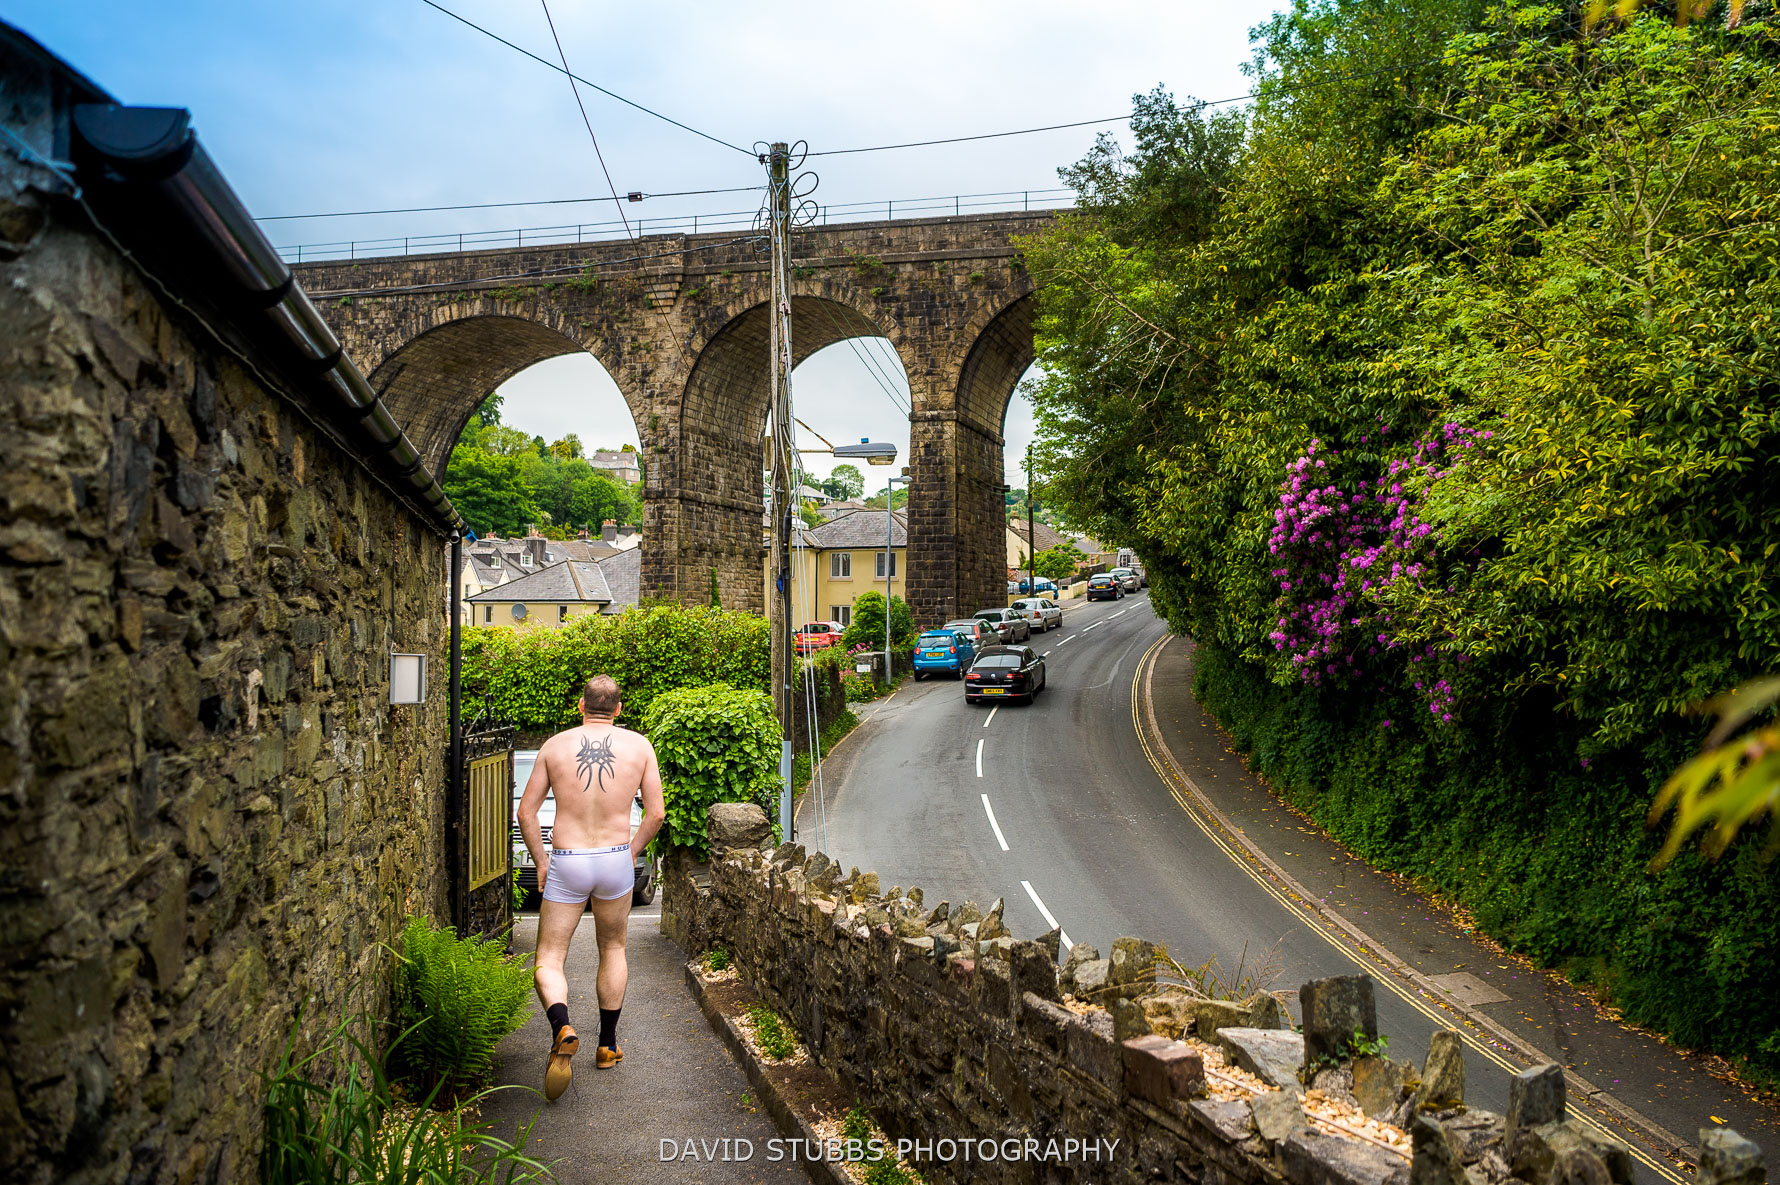 walking streets in boxers